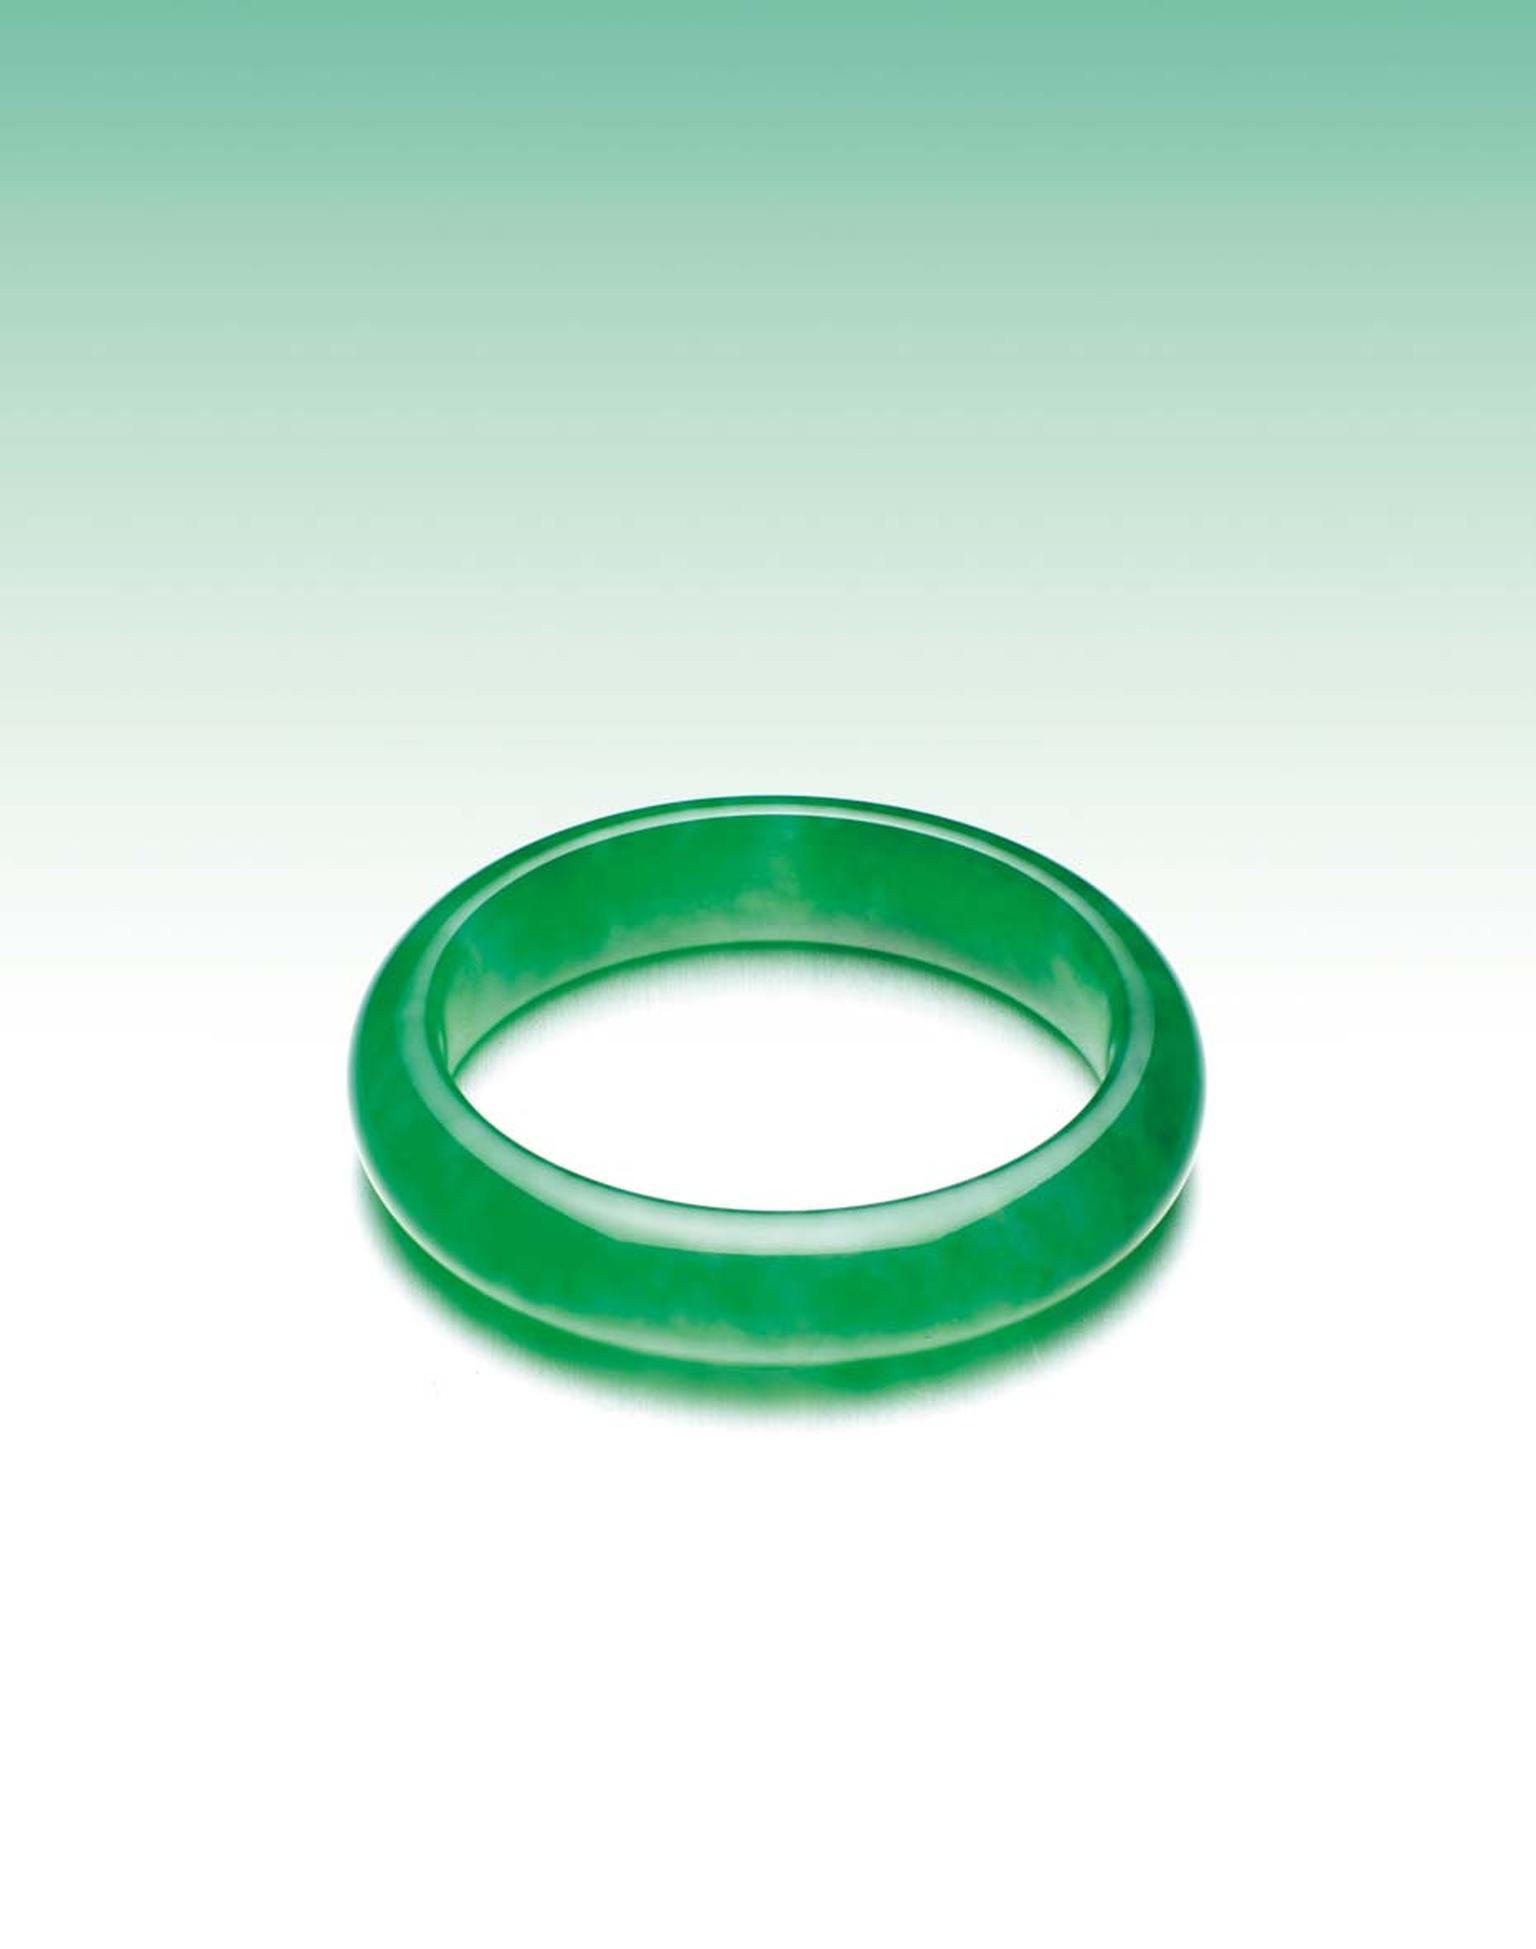 Jadeite bangle (estimate: US$3.8-6.5 million)